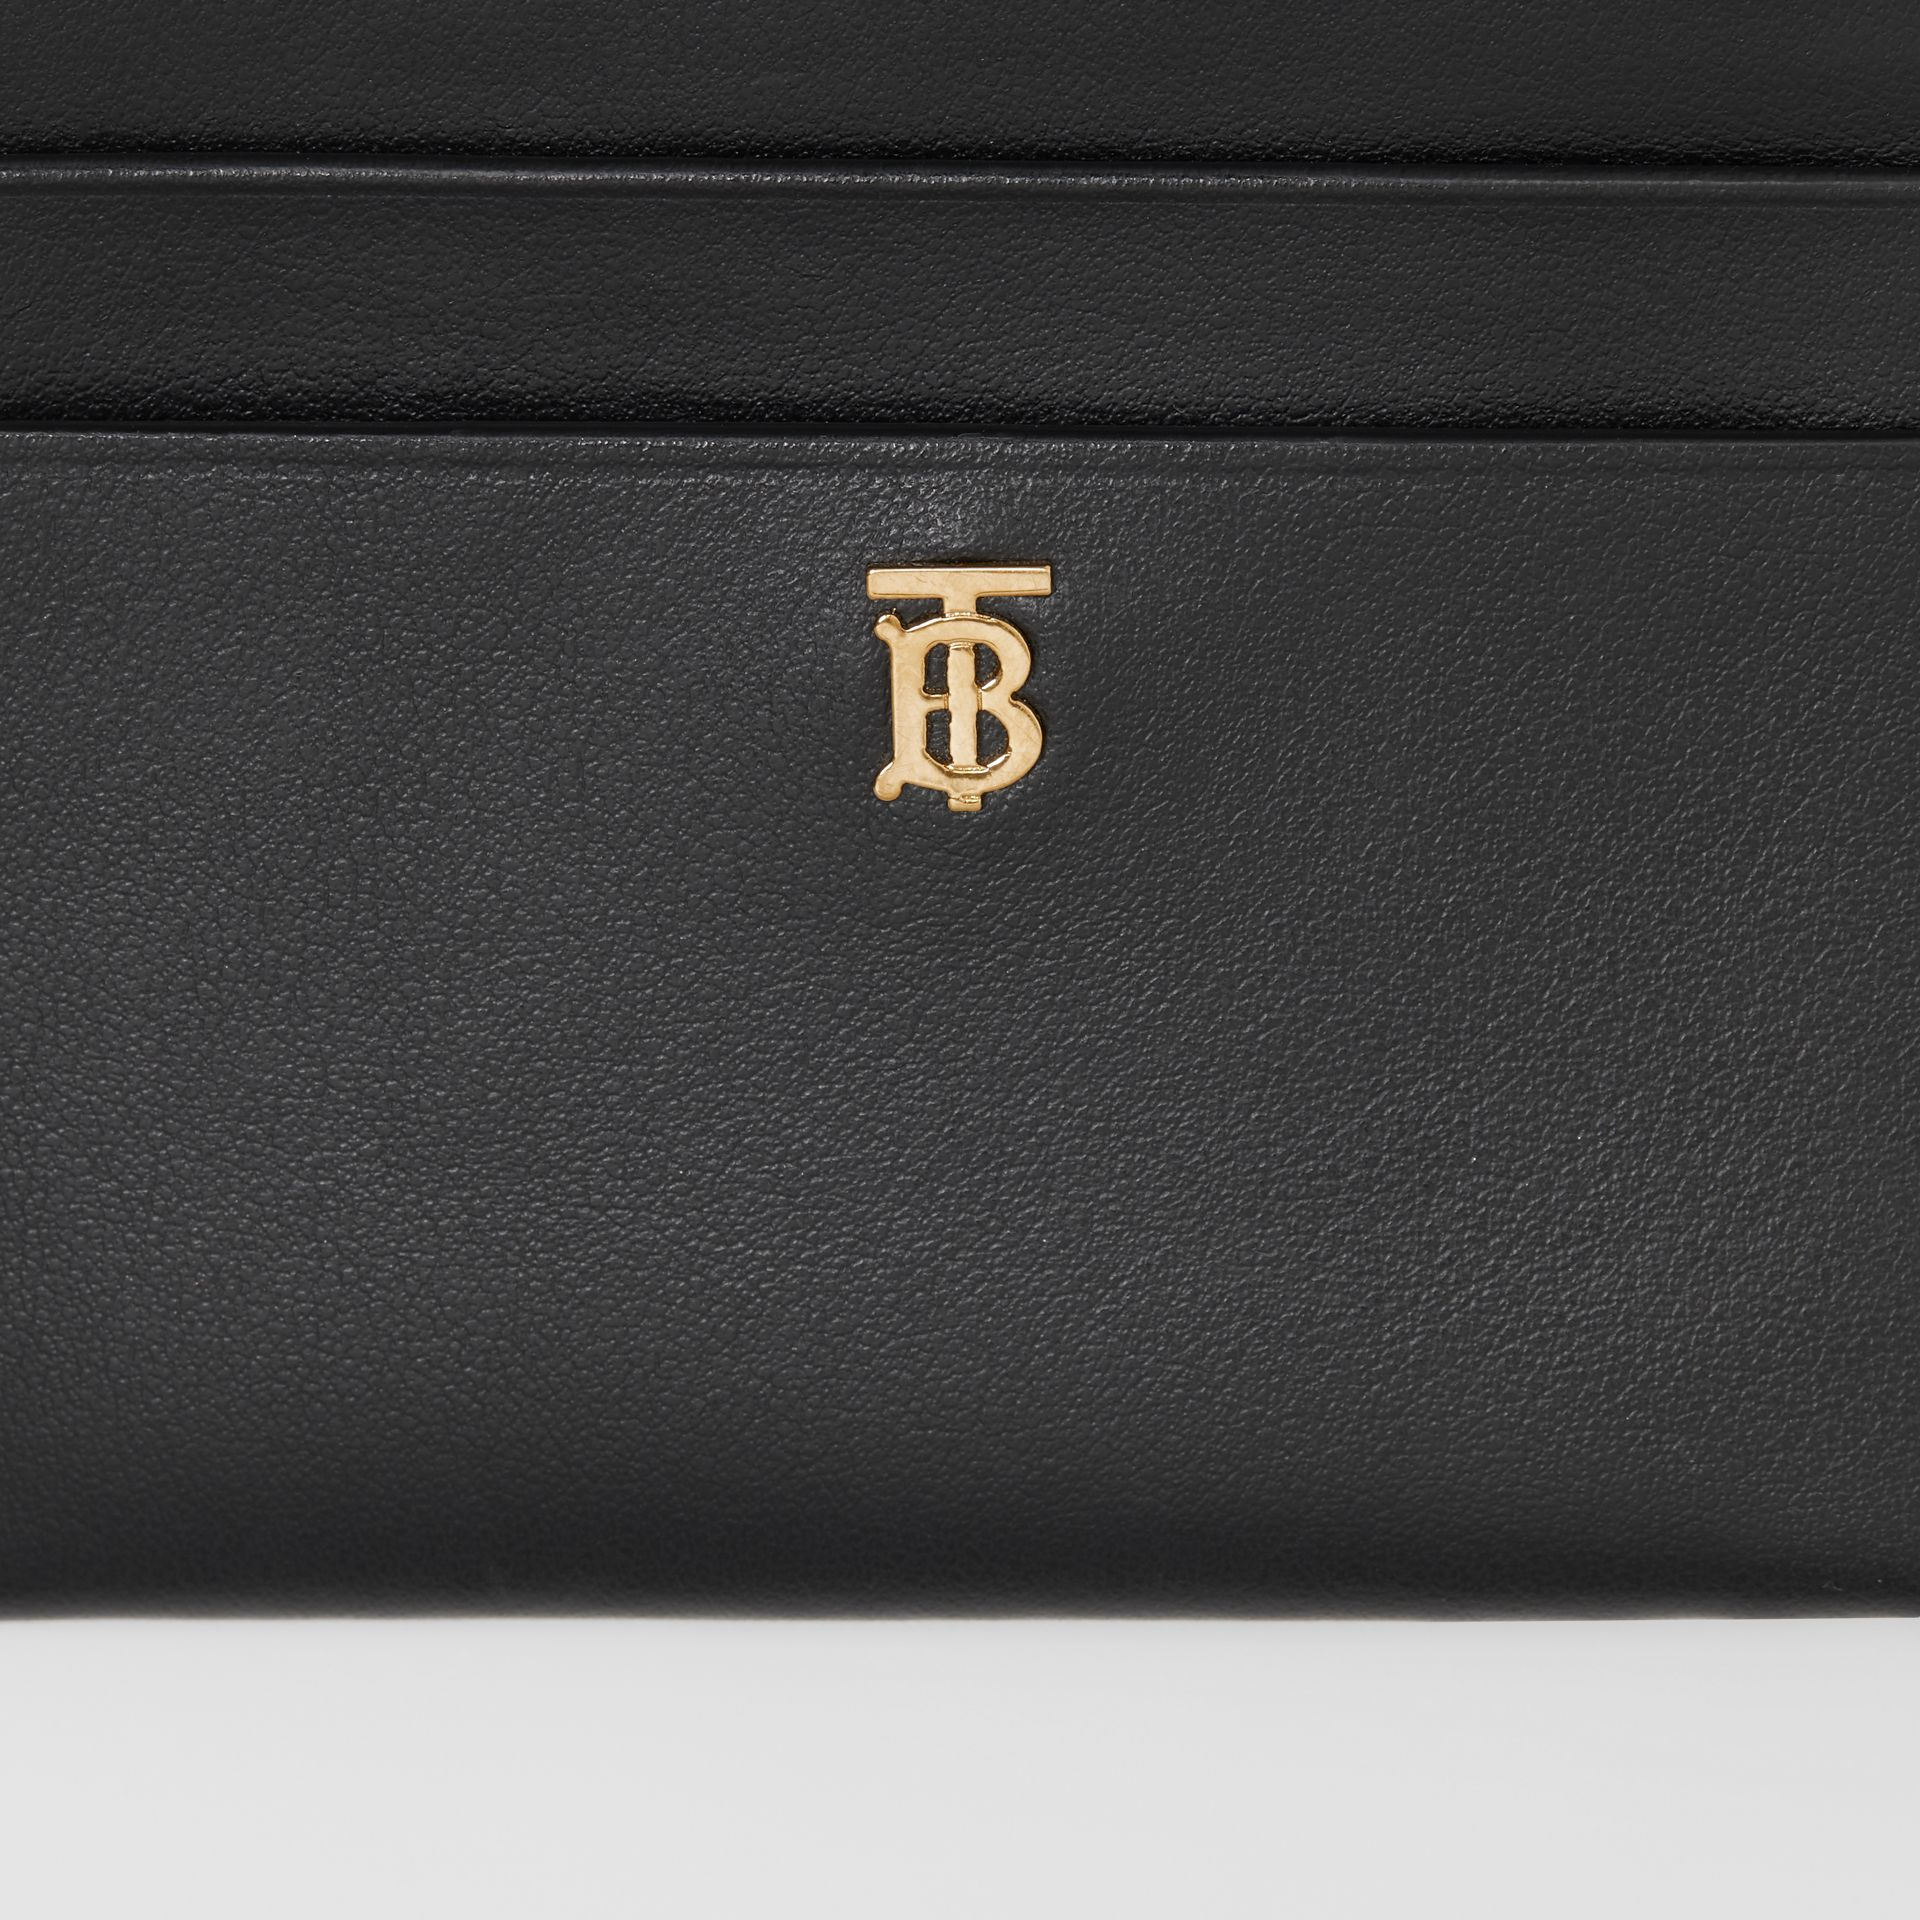 Monogram Motif Leather Zip Card Case in Black - Women | Burberry United States - gallery image 1